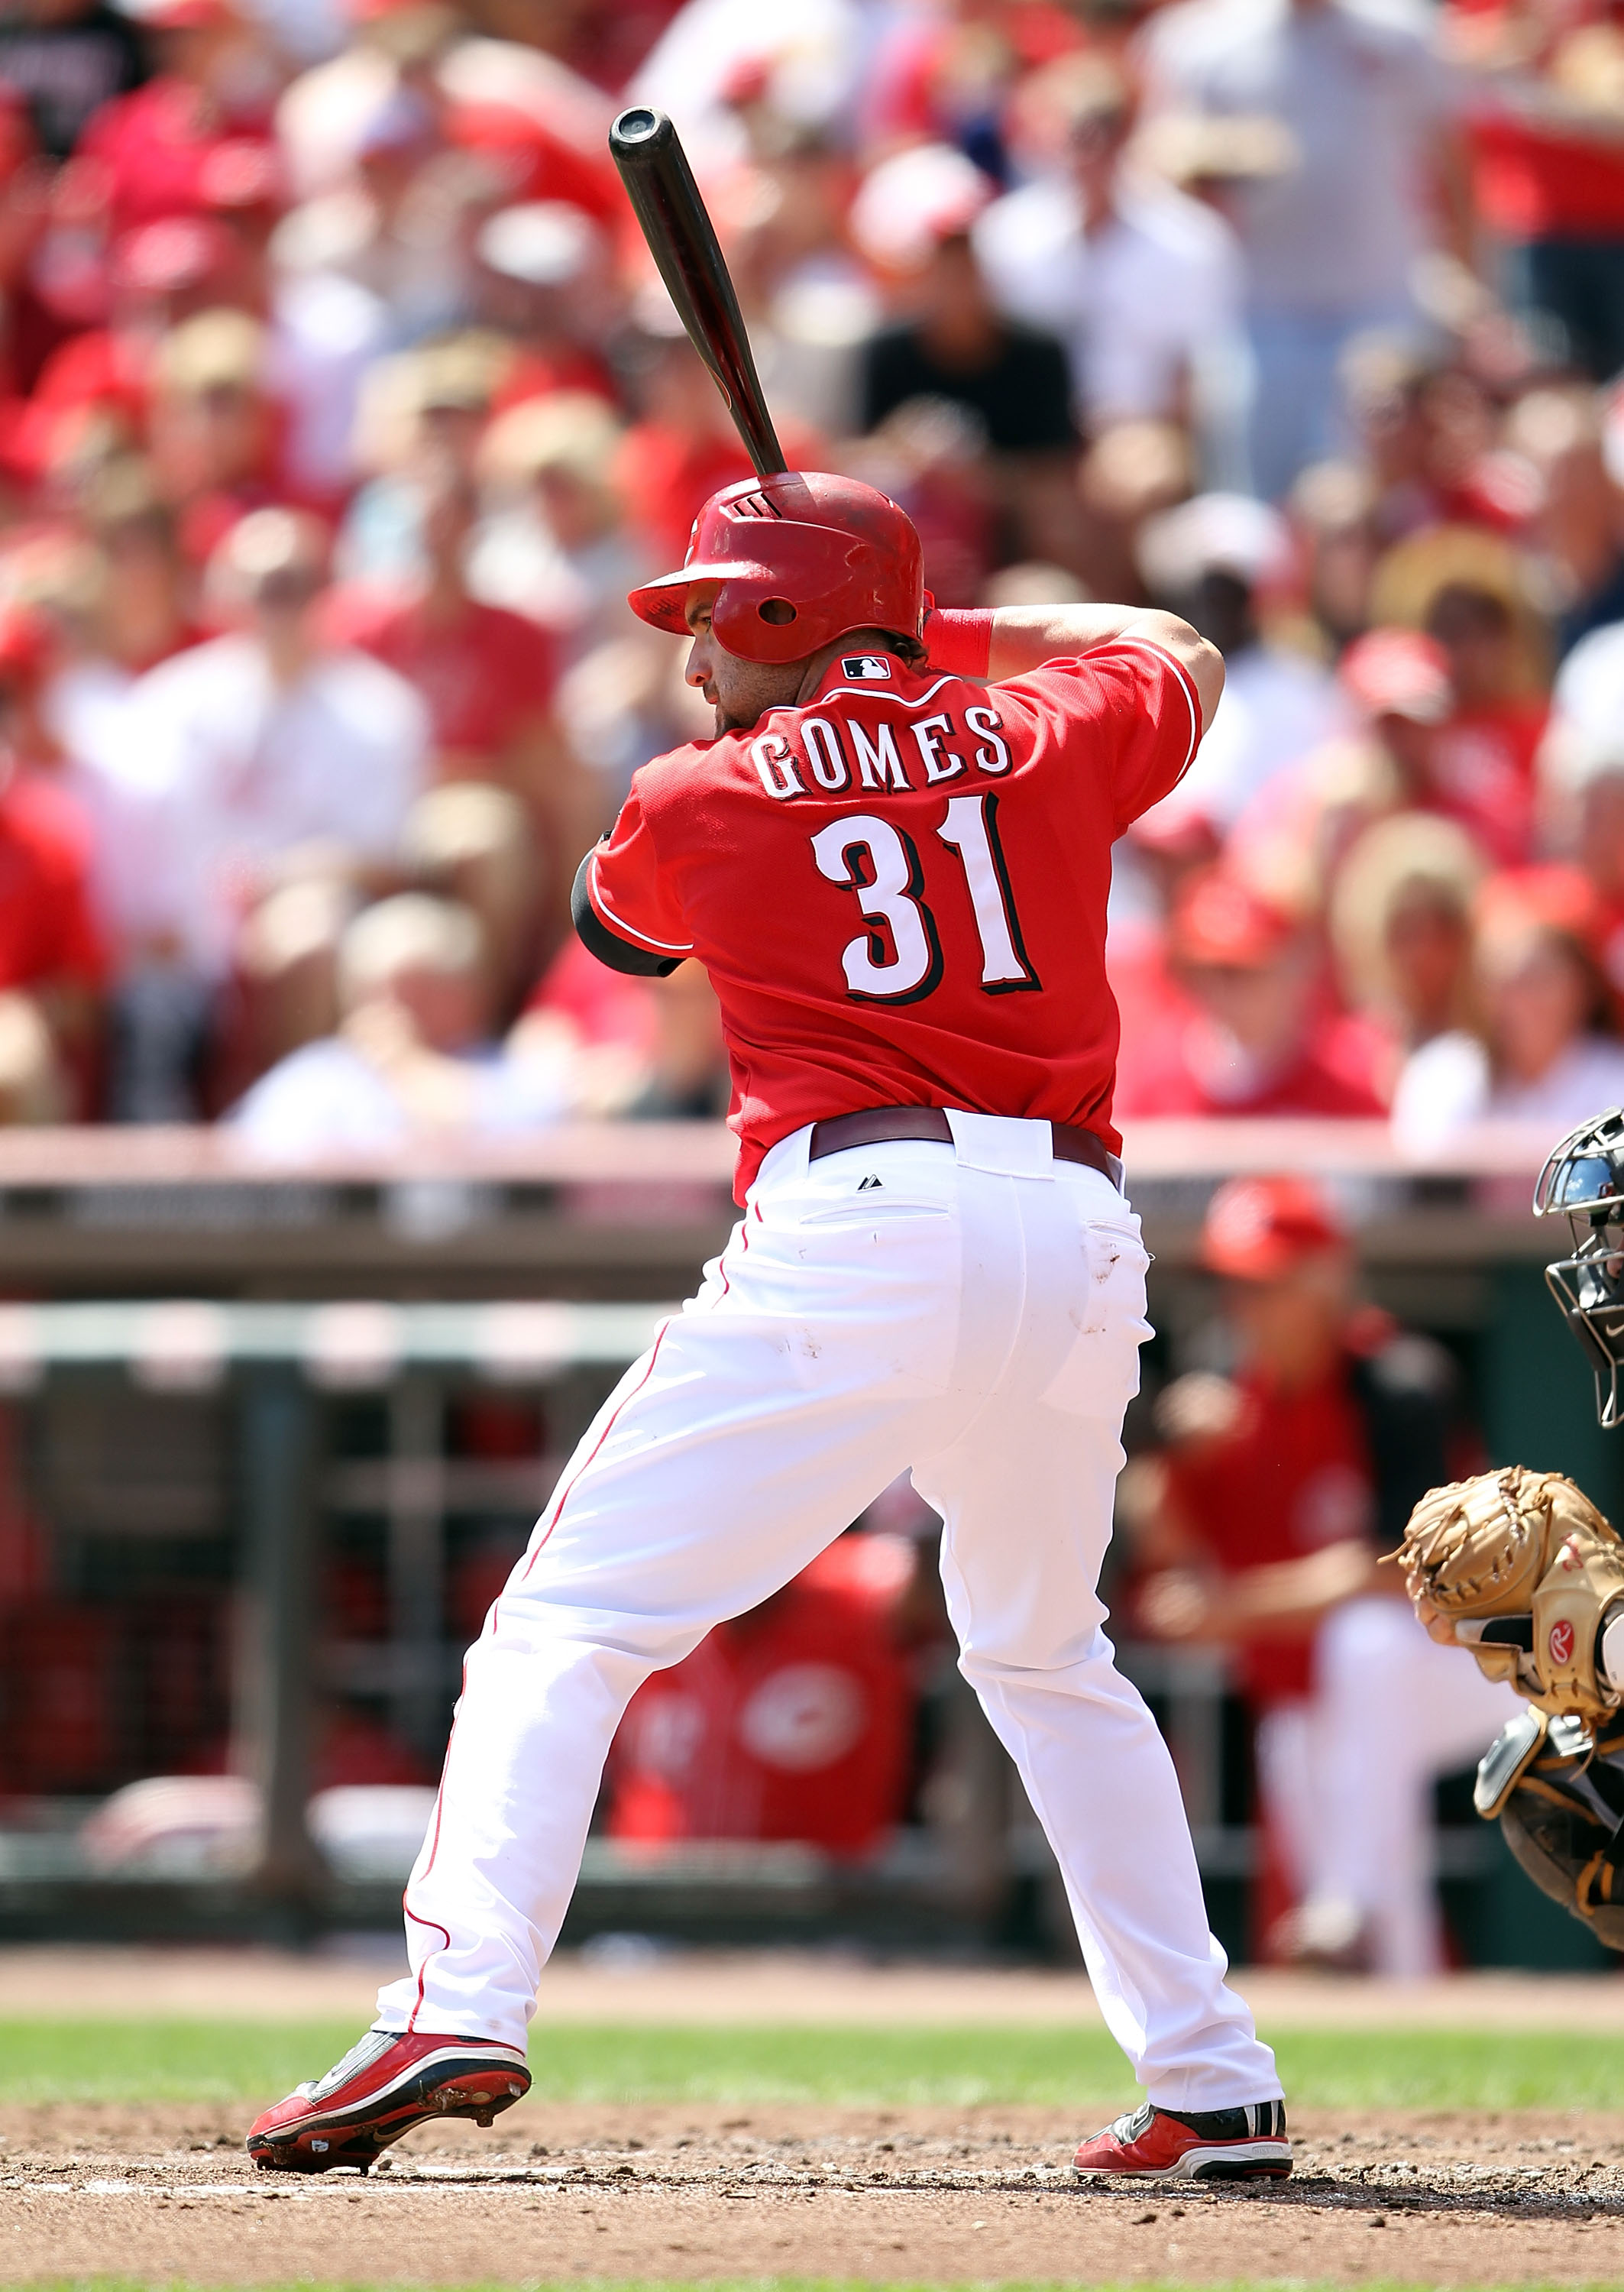 CINCINNATI - SEPTEMBER 12:  Jonny Gomes #31 of  the Cincinnati Reds is at bat during the game against the Pittsburgh Pirates at Great American Ballpark on September 12, 2010 in Cincinnati, Ohio.  (Photo by Andy Lyons/Getty Images)